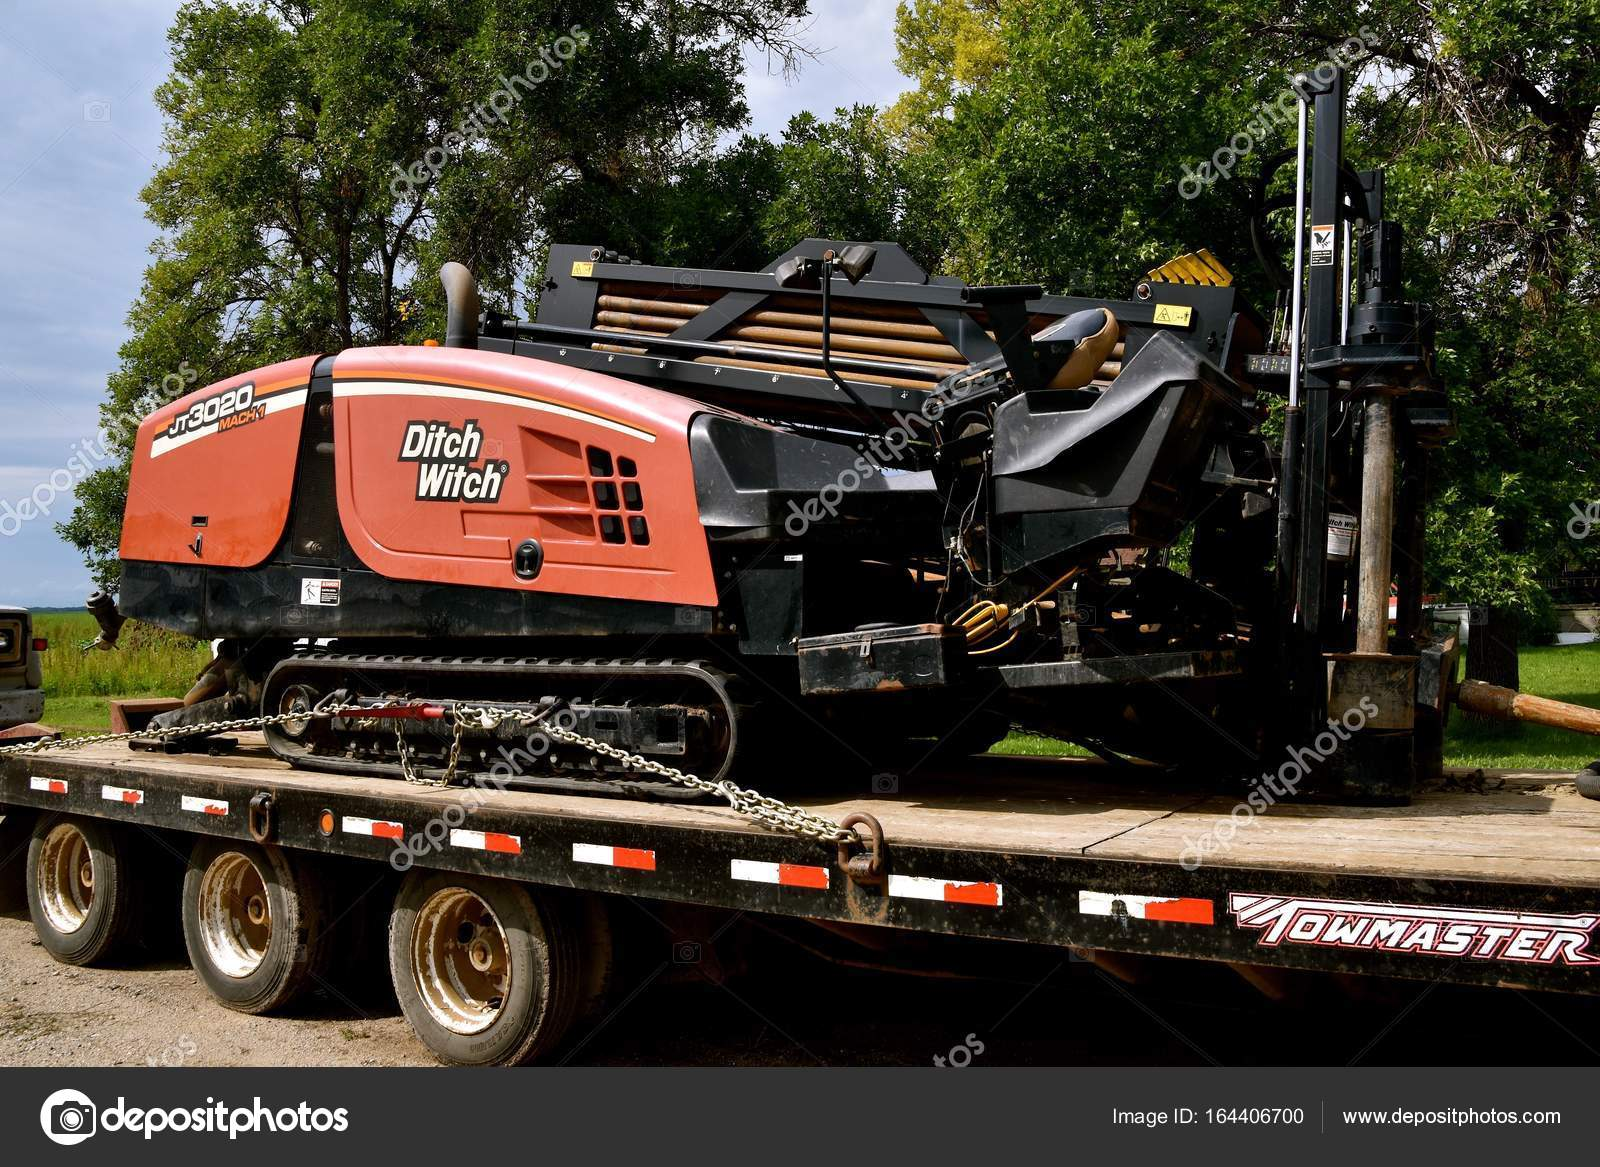 Ditch Witch trencher loaded on a flatbed trailer – Stock